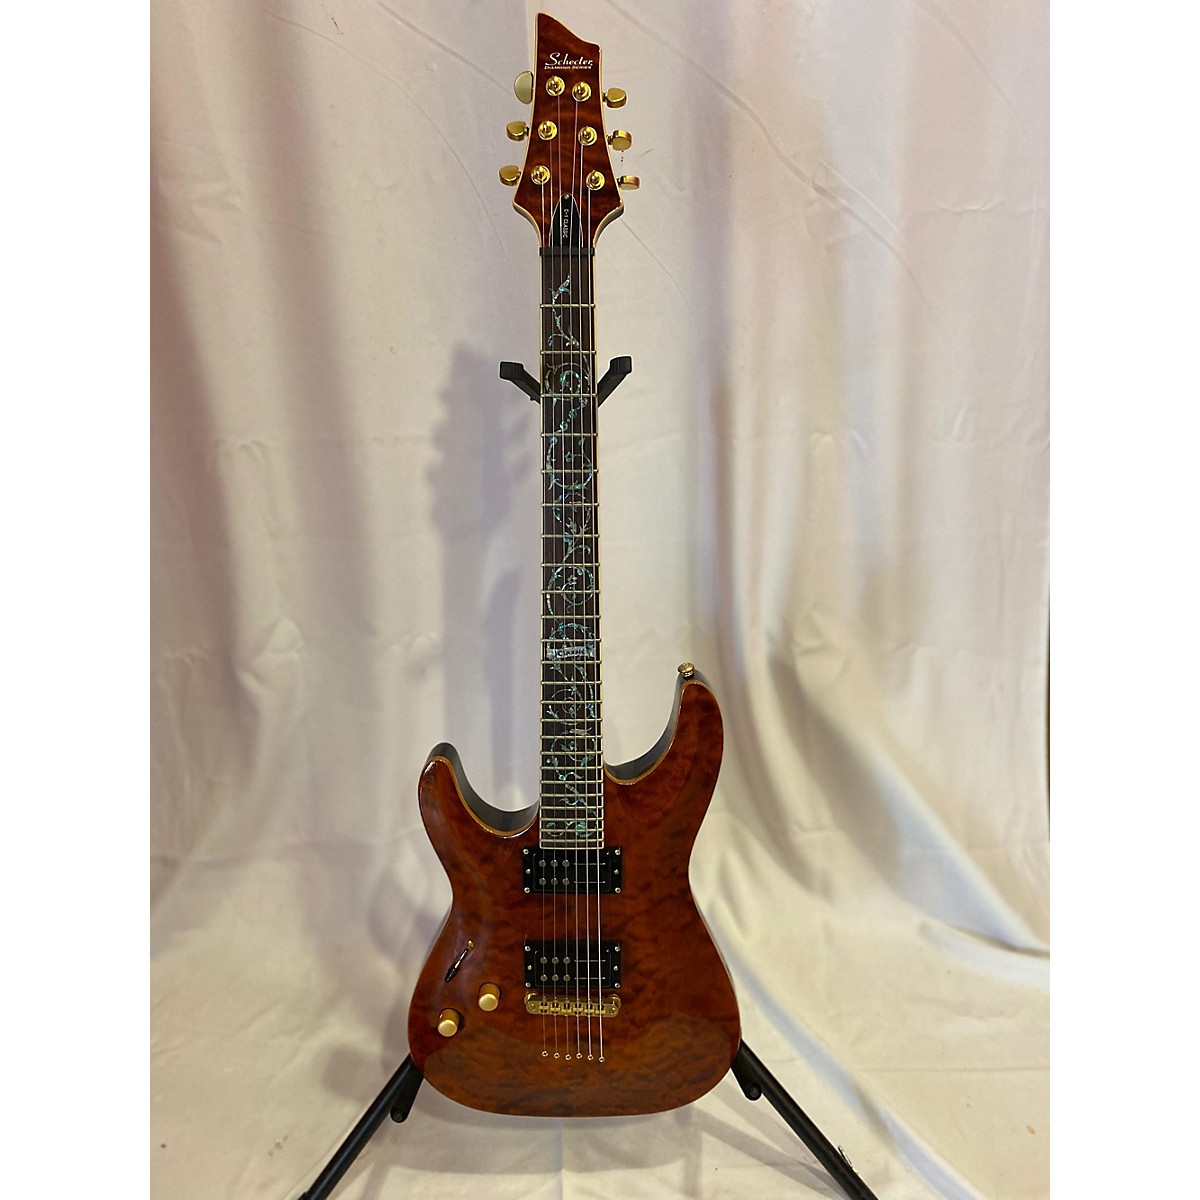 Schecter Guitar Research C1 Classic Left Handed Electric Guitar